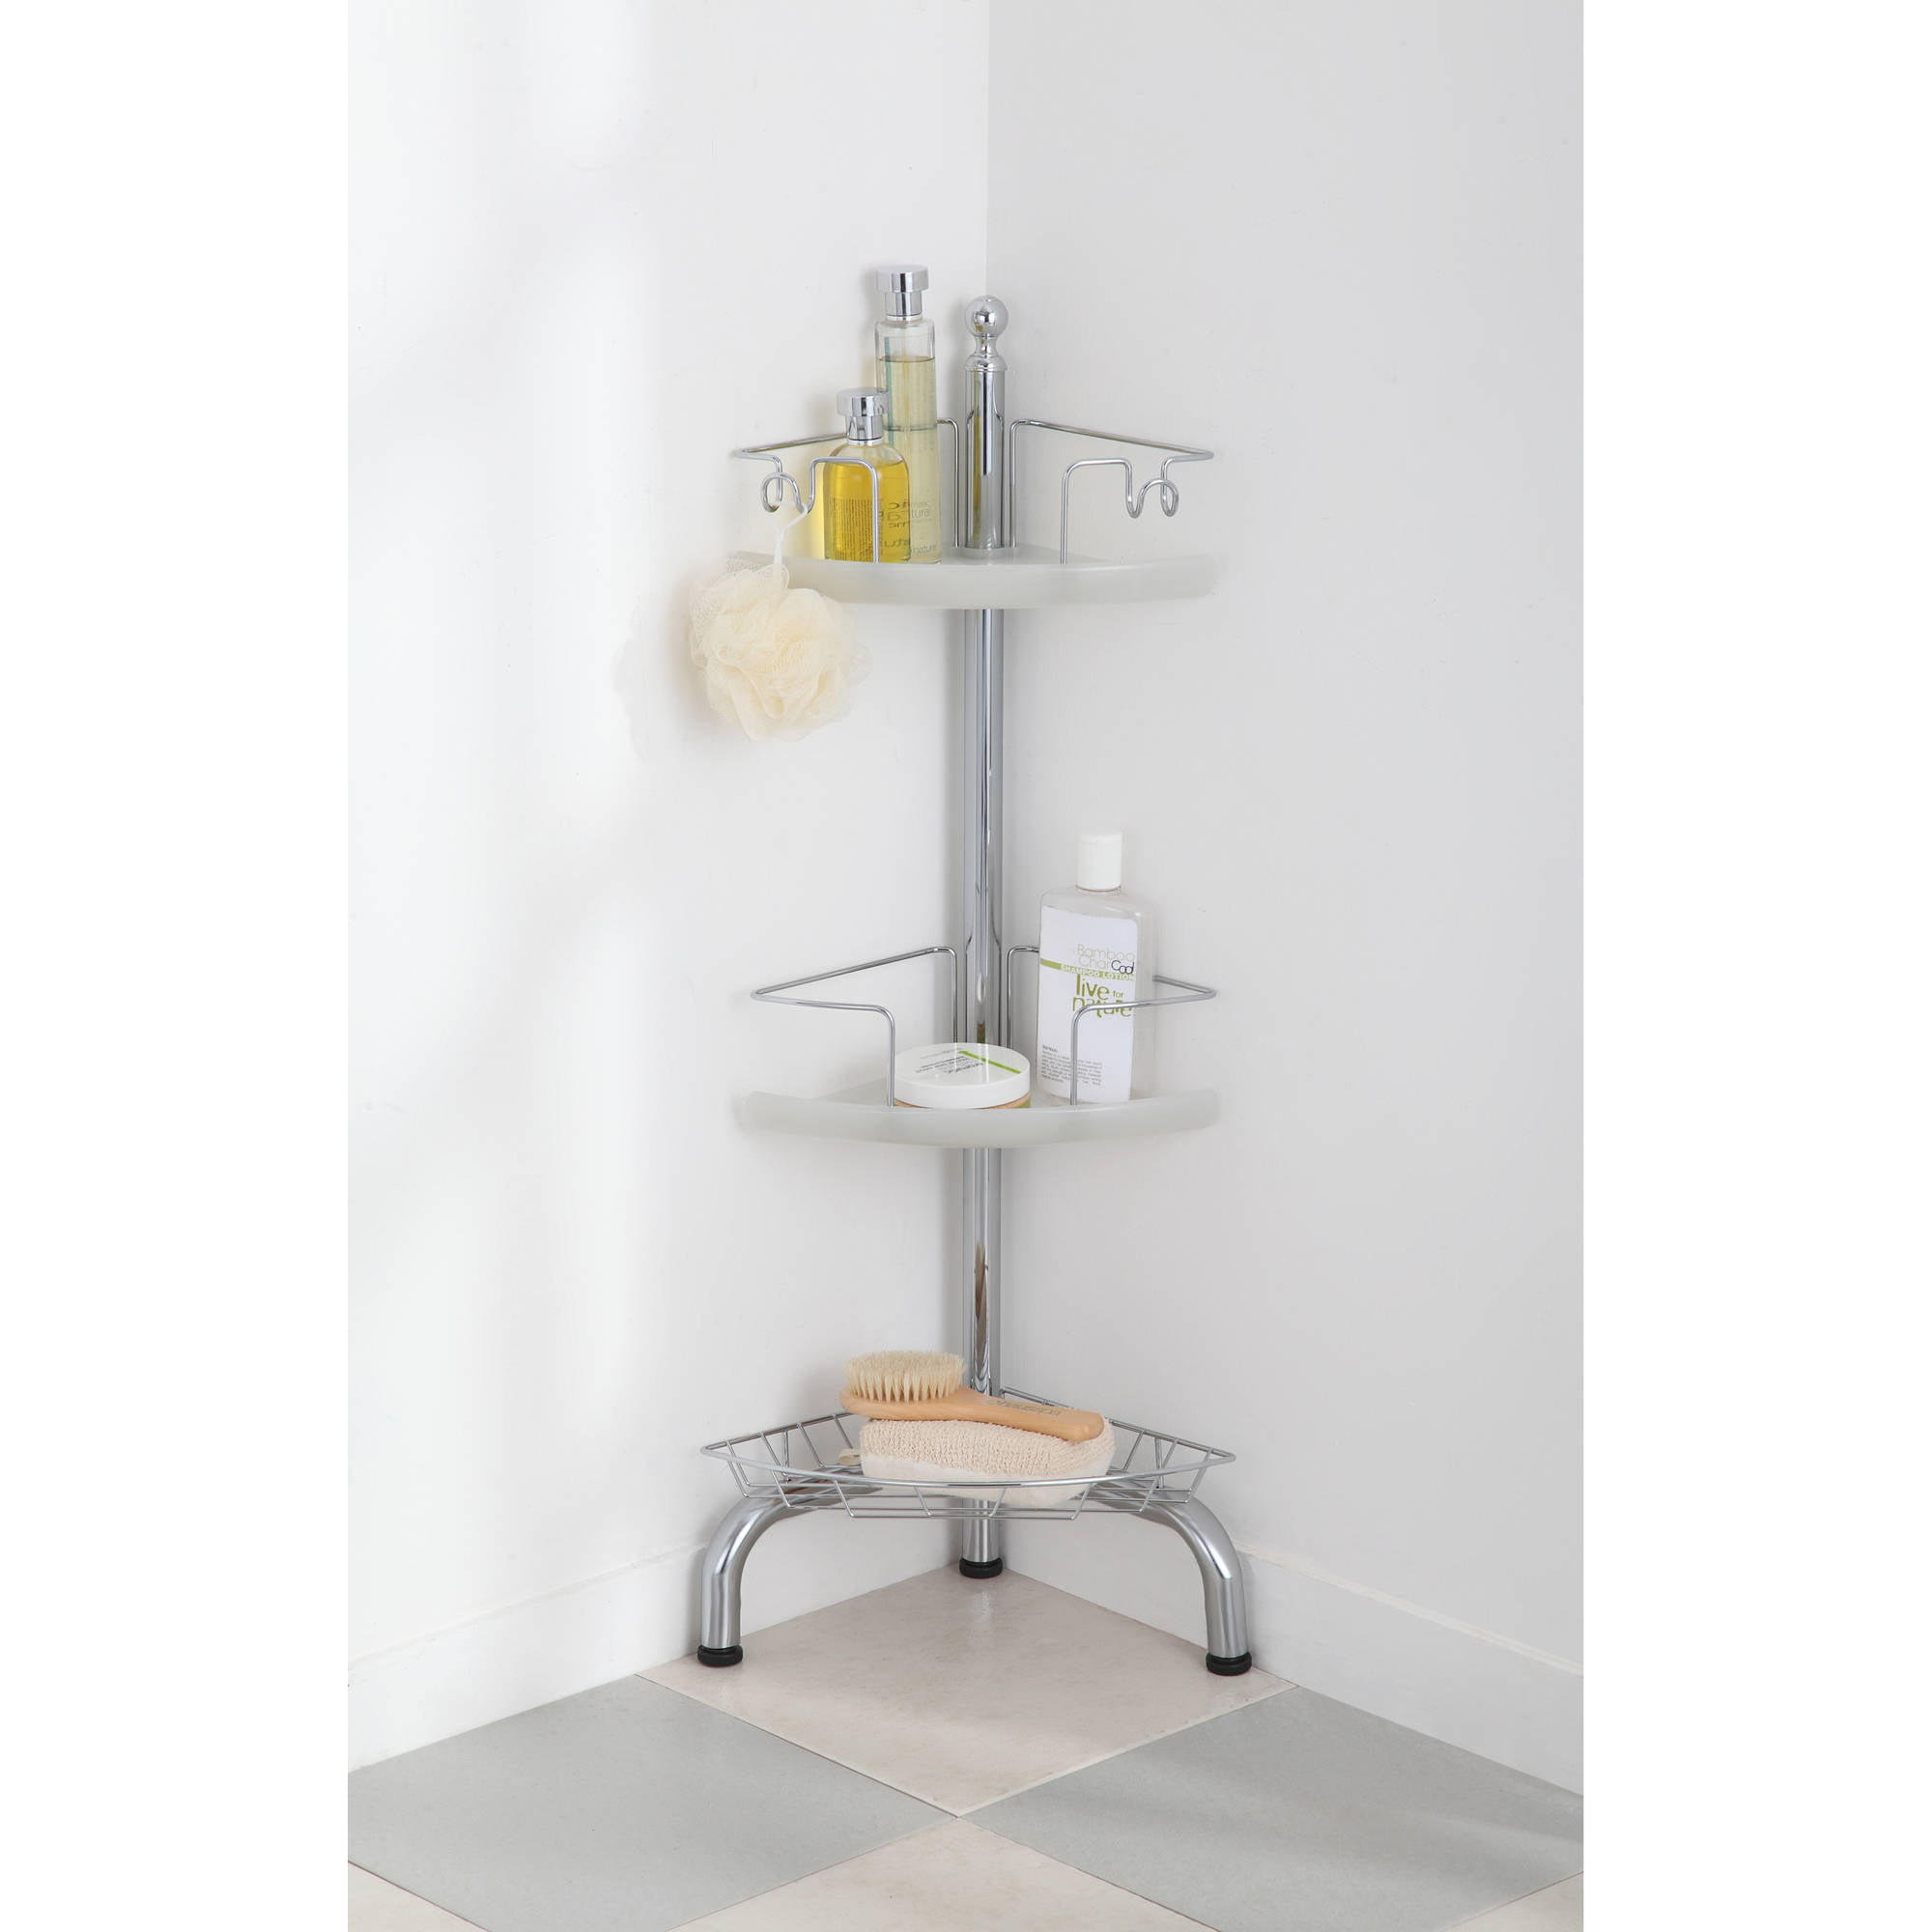 Click here to buy HomeZone 3-Tier Adjustable Corner Shower Caddy, Chrome by HUIYANG GUOHUA METAL PRODUCTS CO.,LTD.